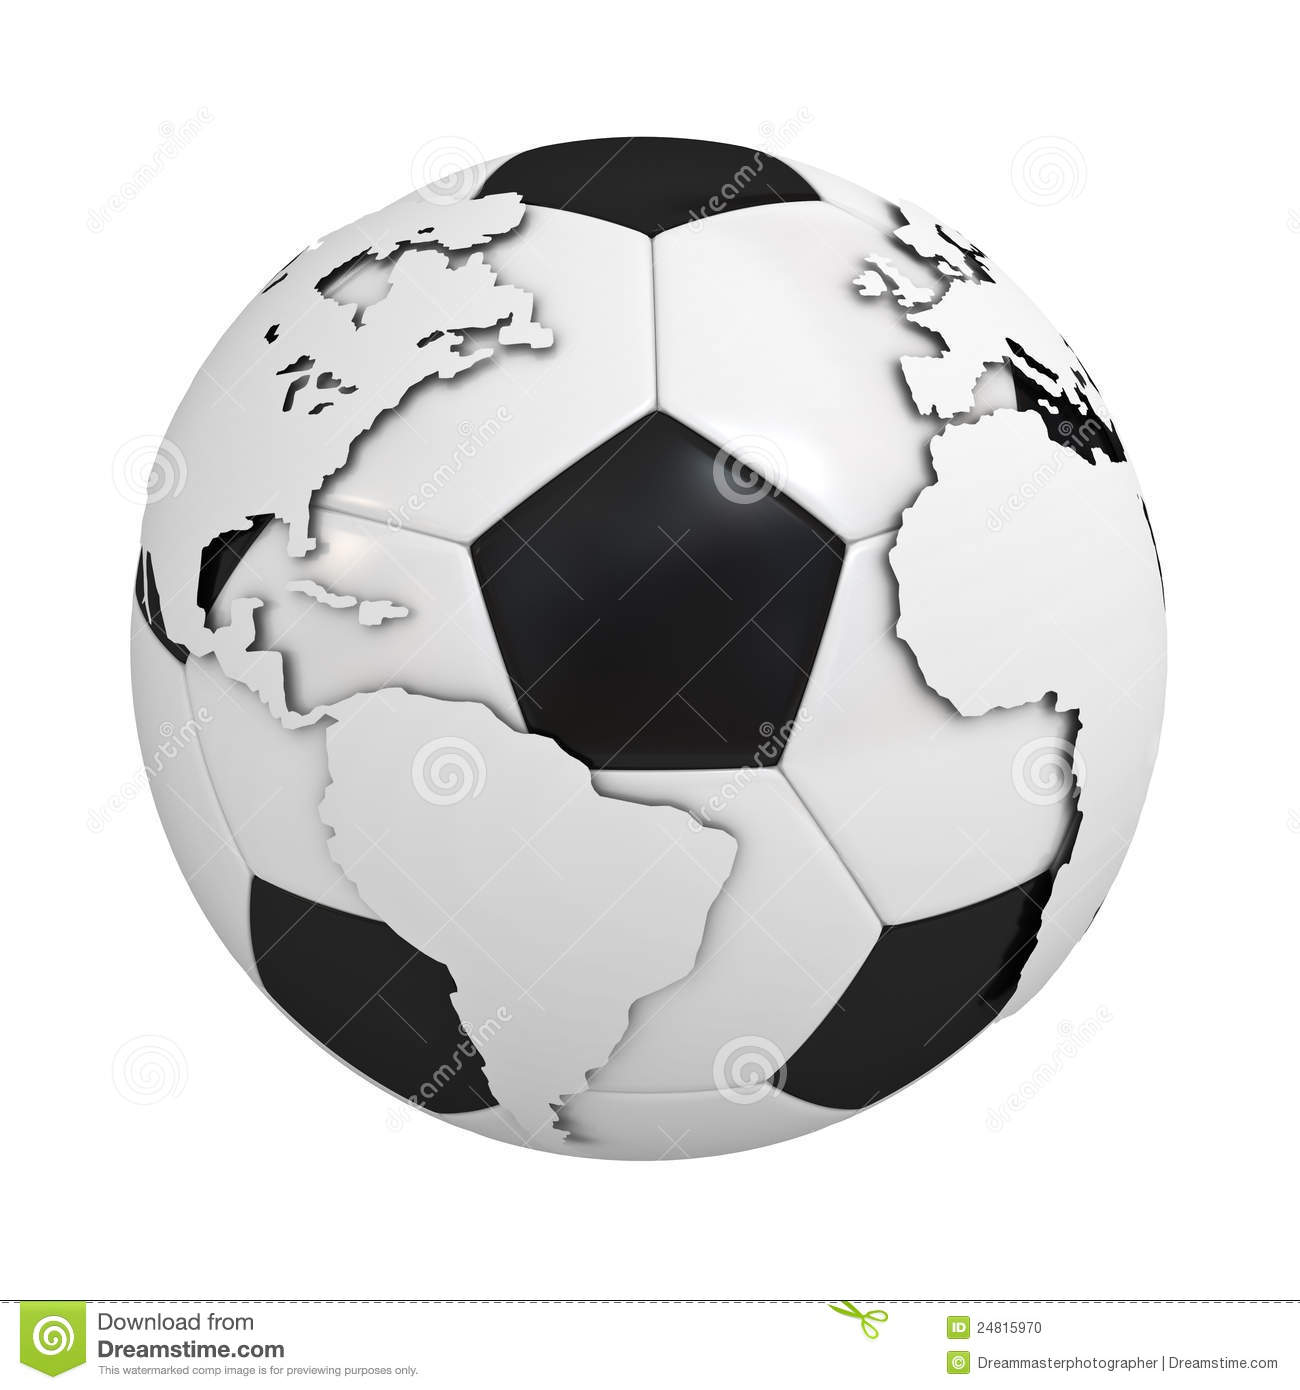 Globe map on soccer ball stock illustration illustration of ball download comp gumiabroncs Images